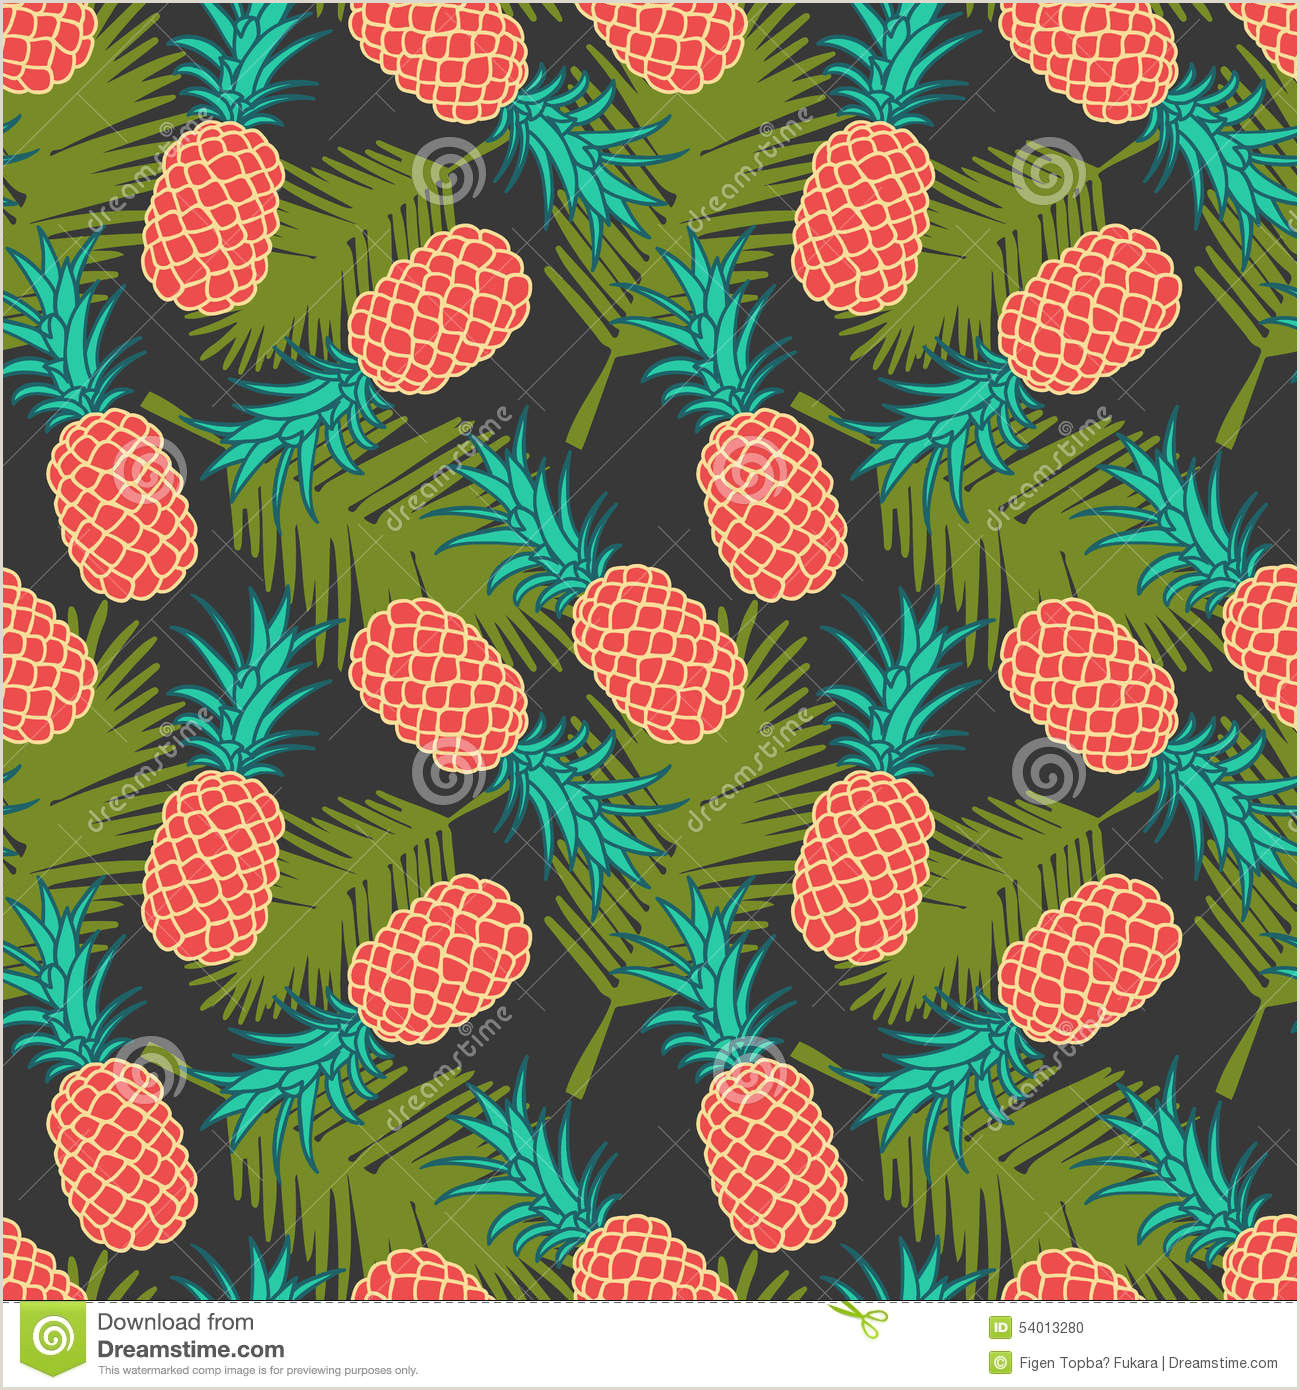 Pineapple Cut Out Template Seamless Pineapple Pattern Stock Vector Illustration Of